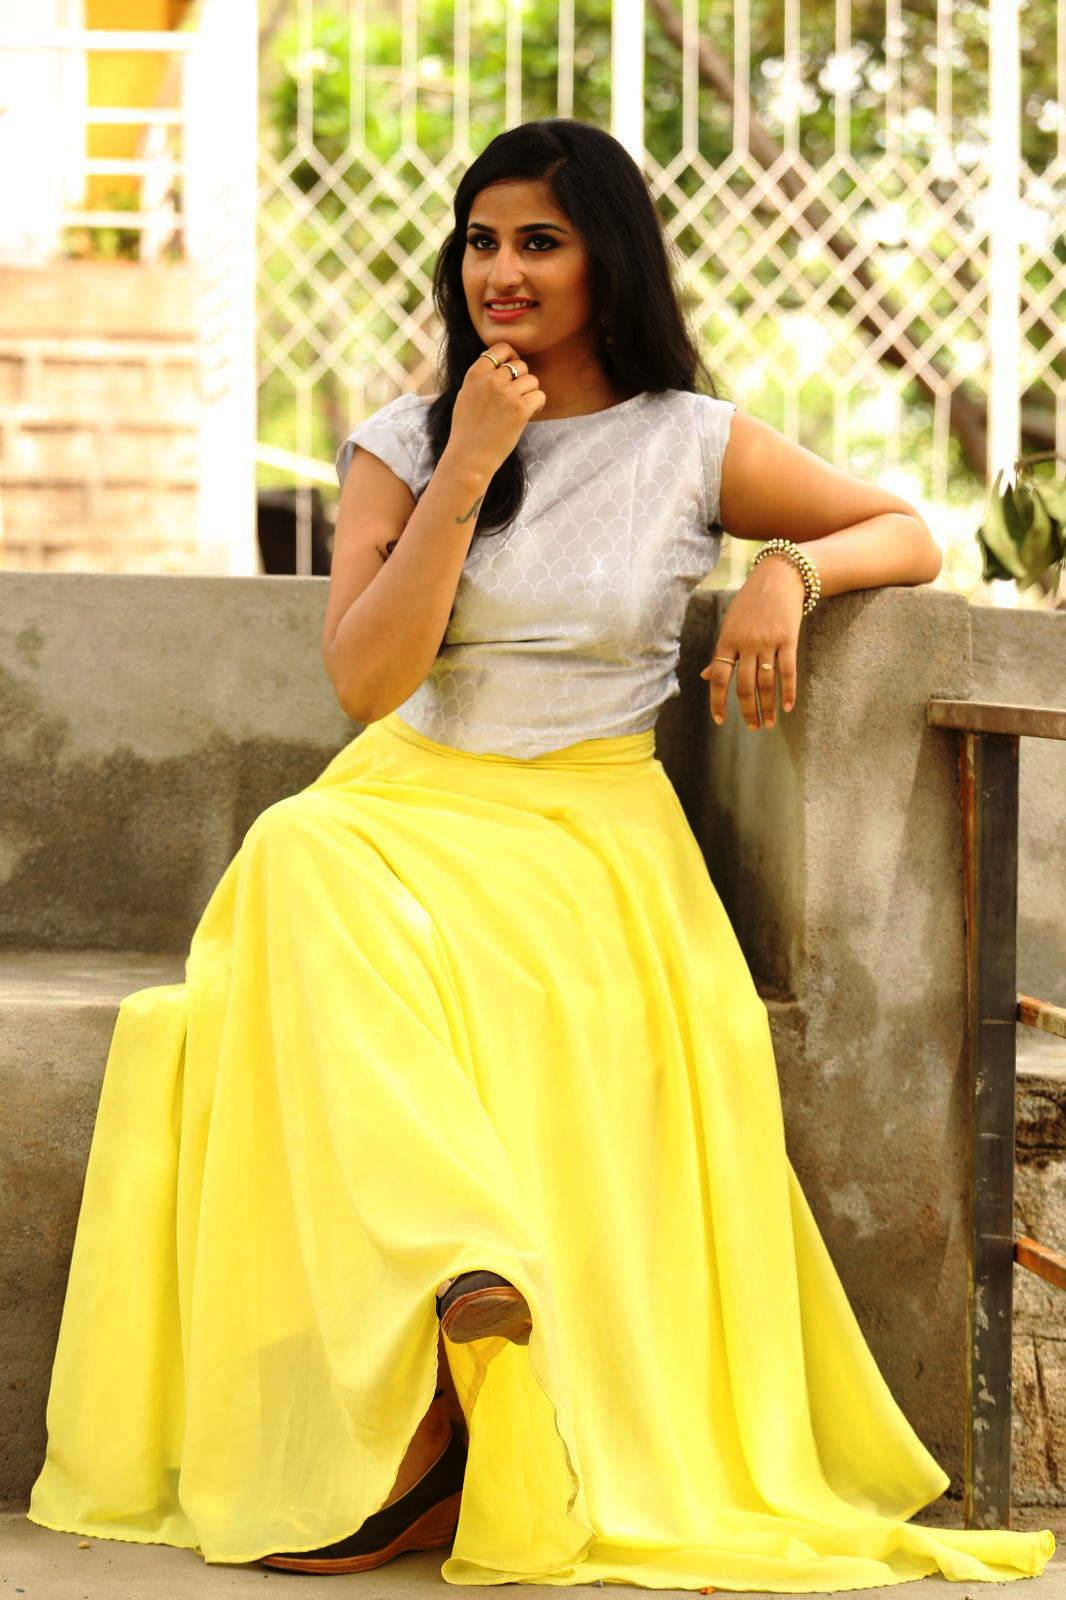 15 Beautiful South Indian Actress Photos Of Ankitha